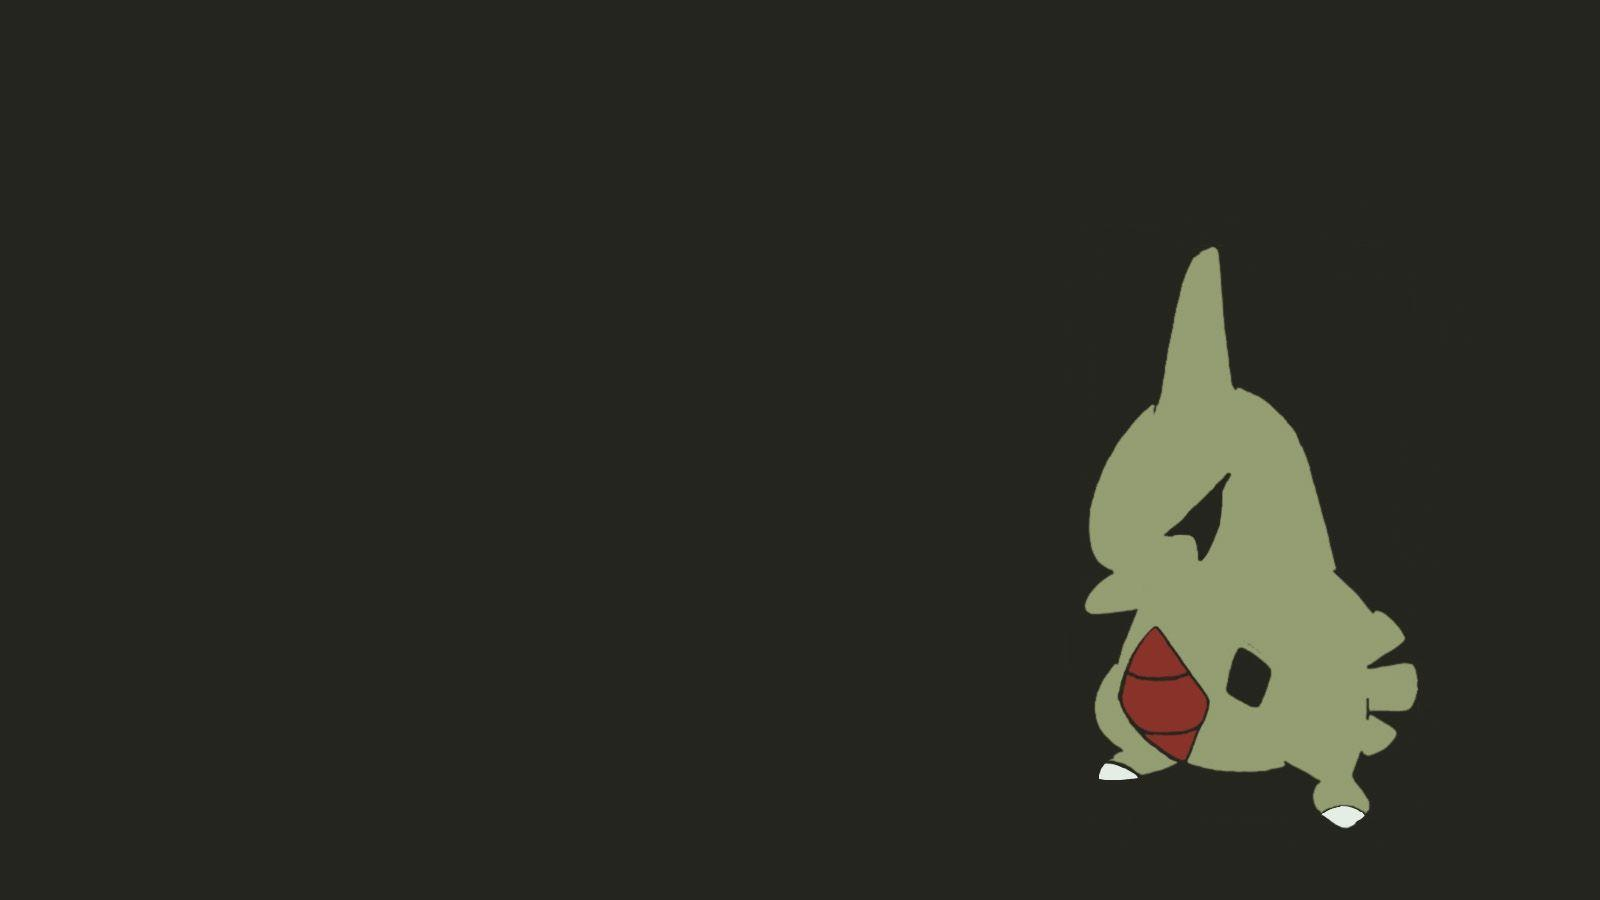 larvitar 1600x900 wallpapers High Quality Wallpapers,High Definition